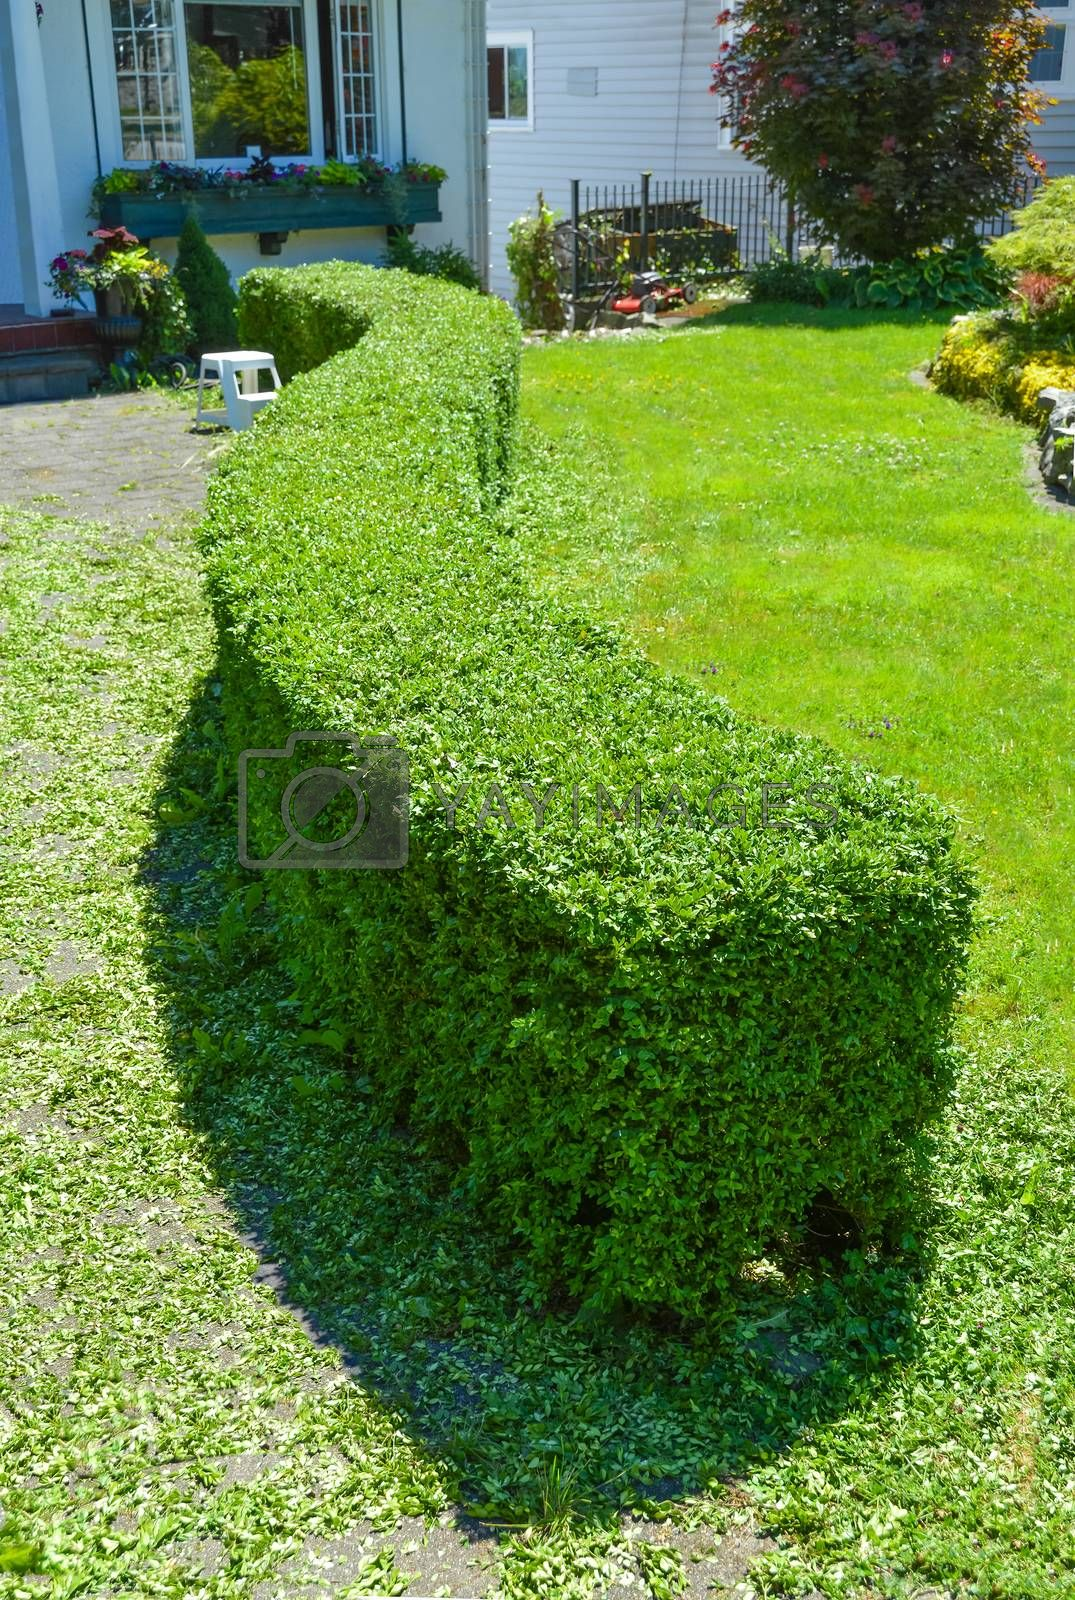 Royalty free image of Green curved hedge in front of a house. Freshly sheared low profile hedge by Imagenet